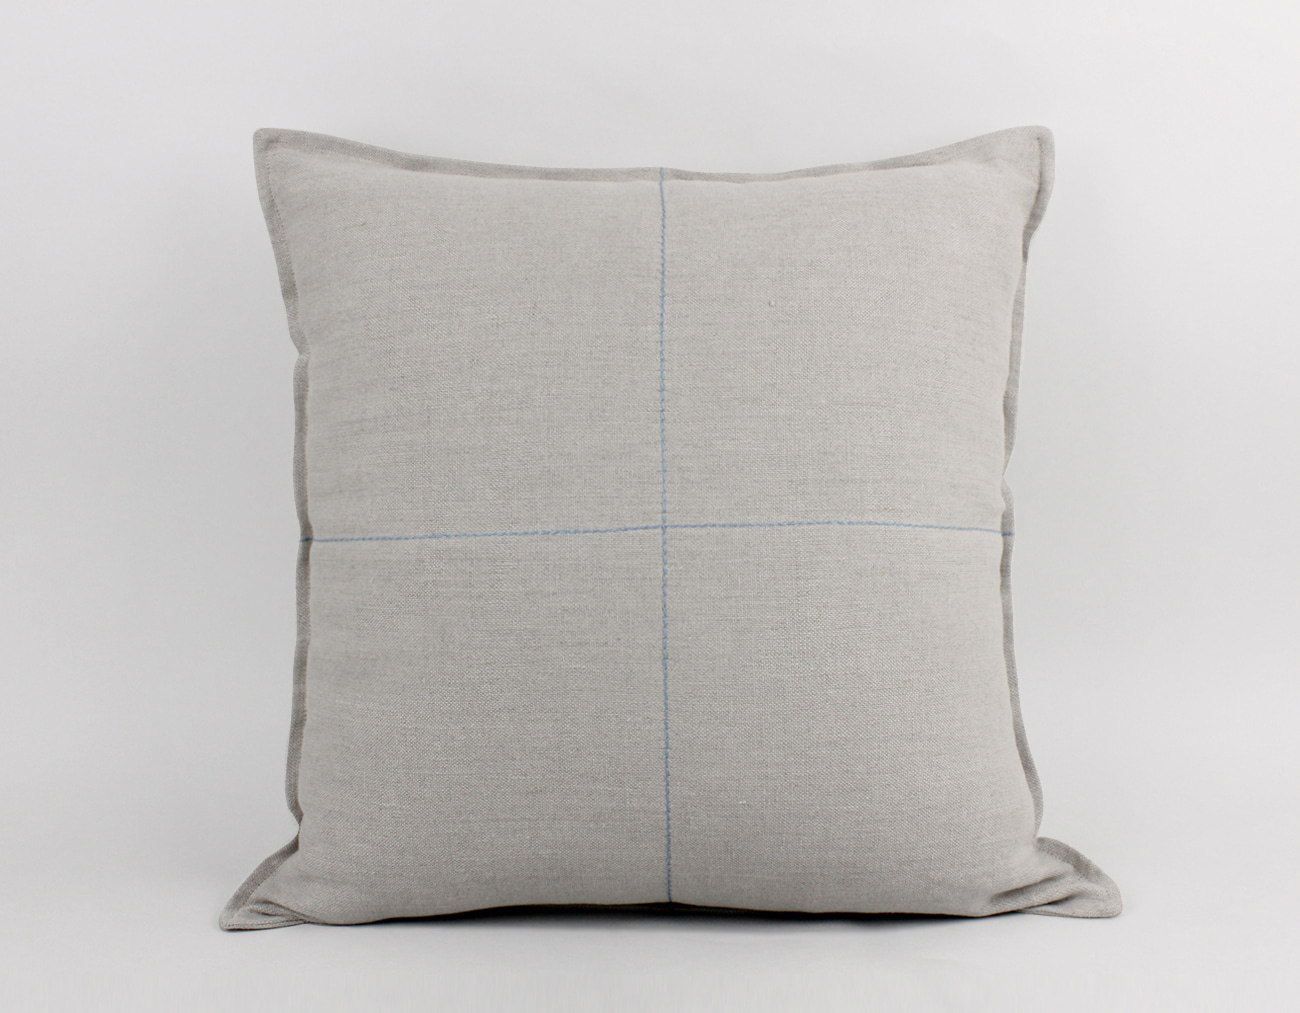 LINEN STITCH CUSHION_LIGHT BLUE CROSS